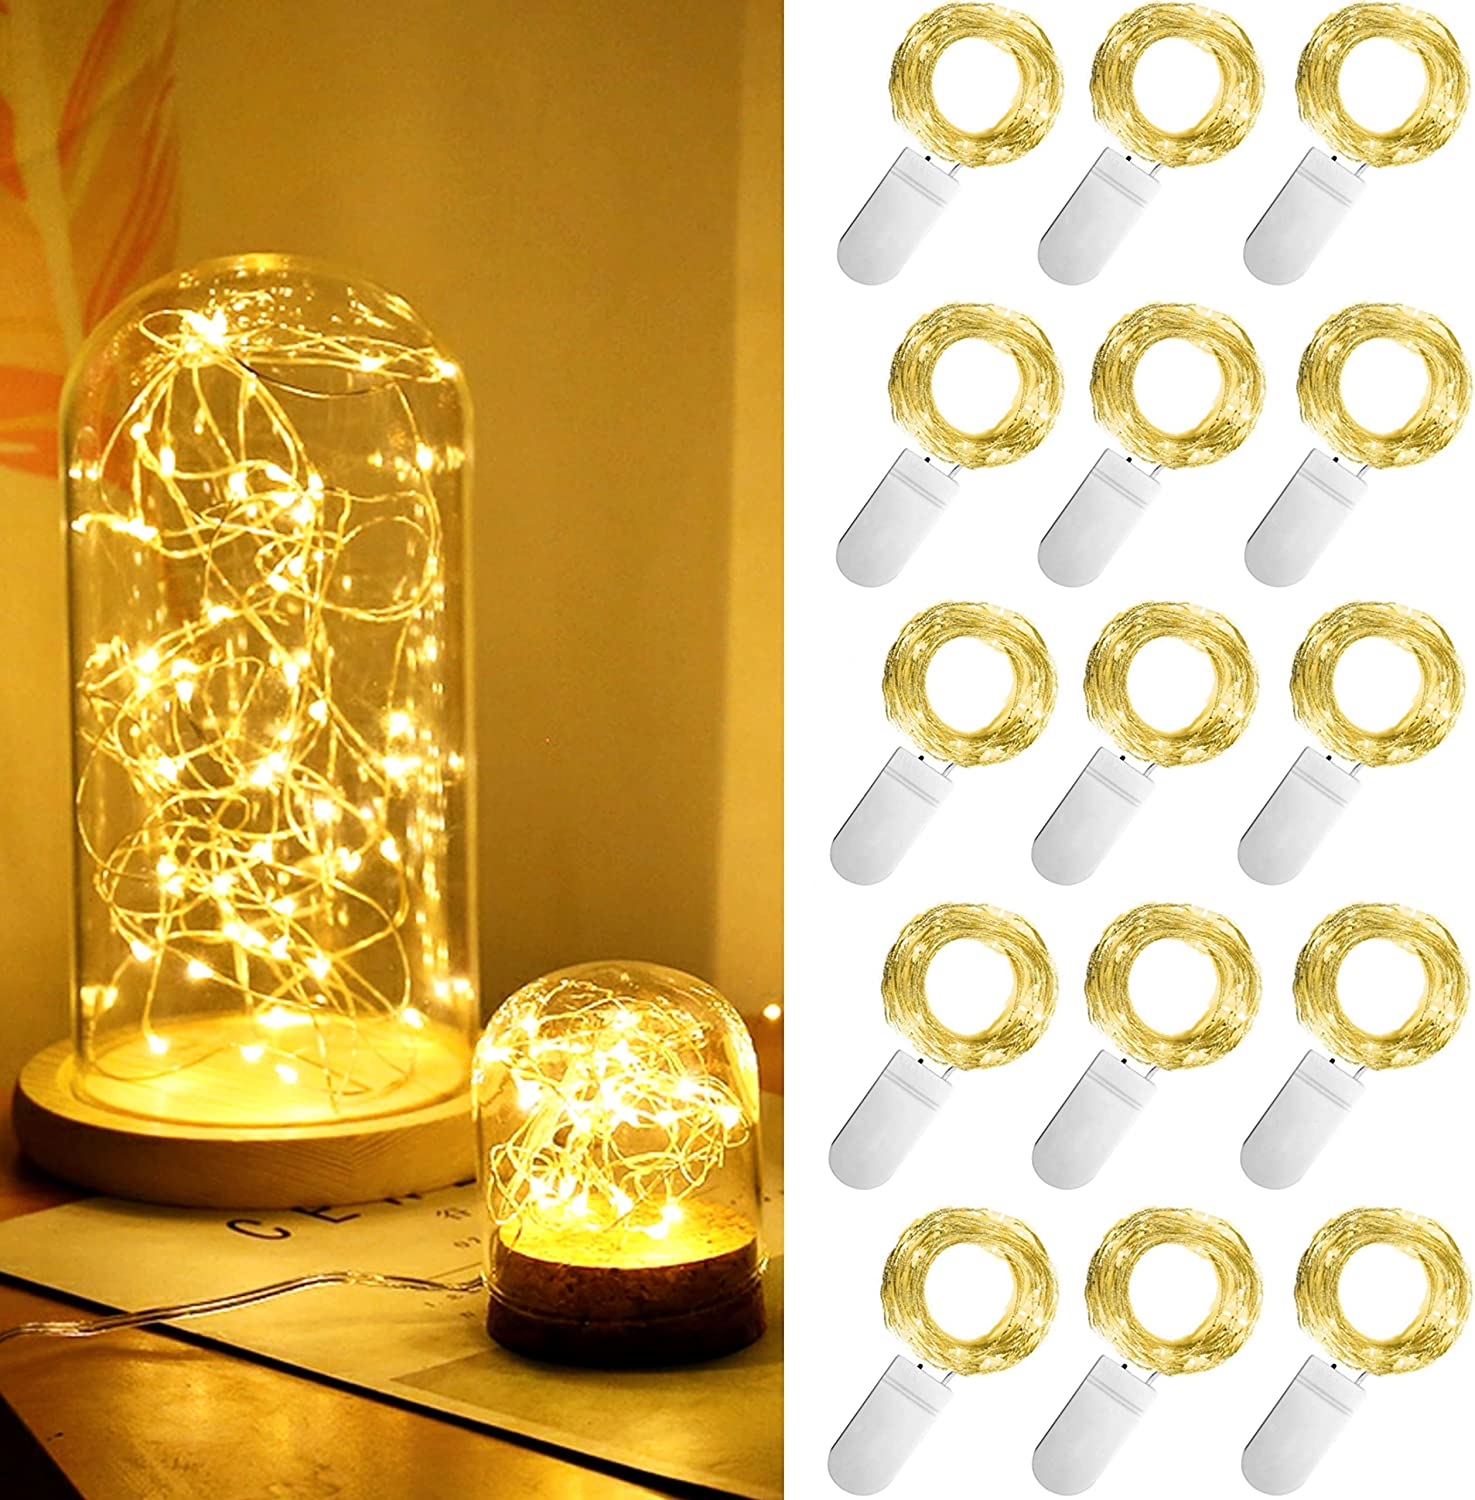 SmilingTown Complete Free Shipping Starry Fairy String Lights Color LED Seattle Mall Silver Firefly